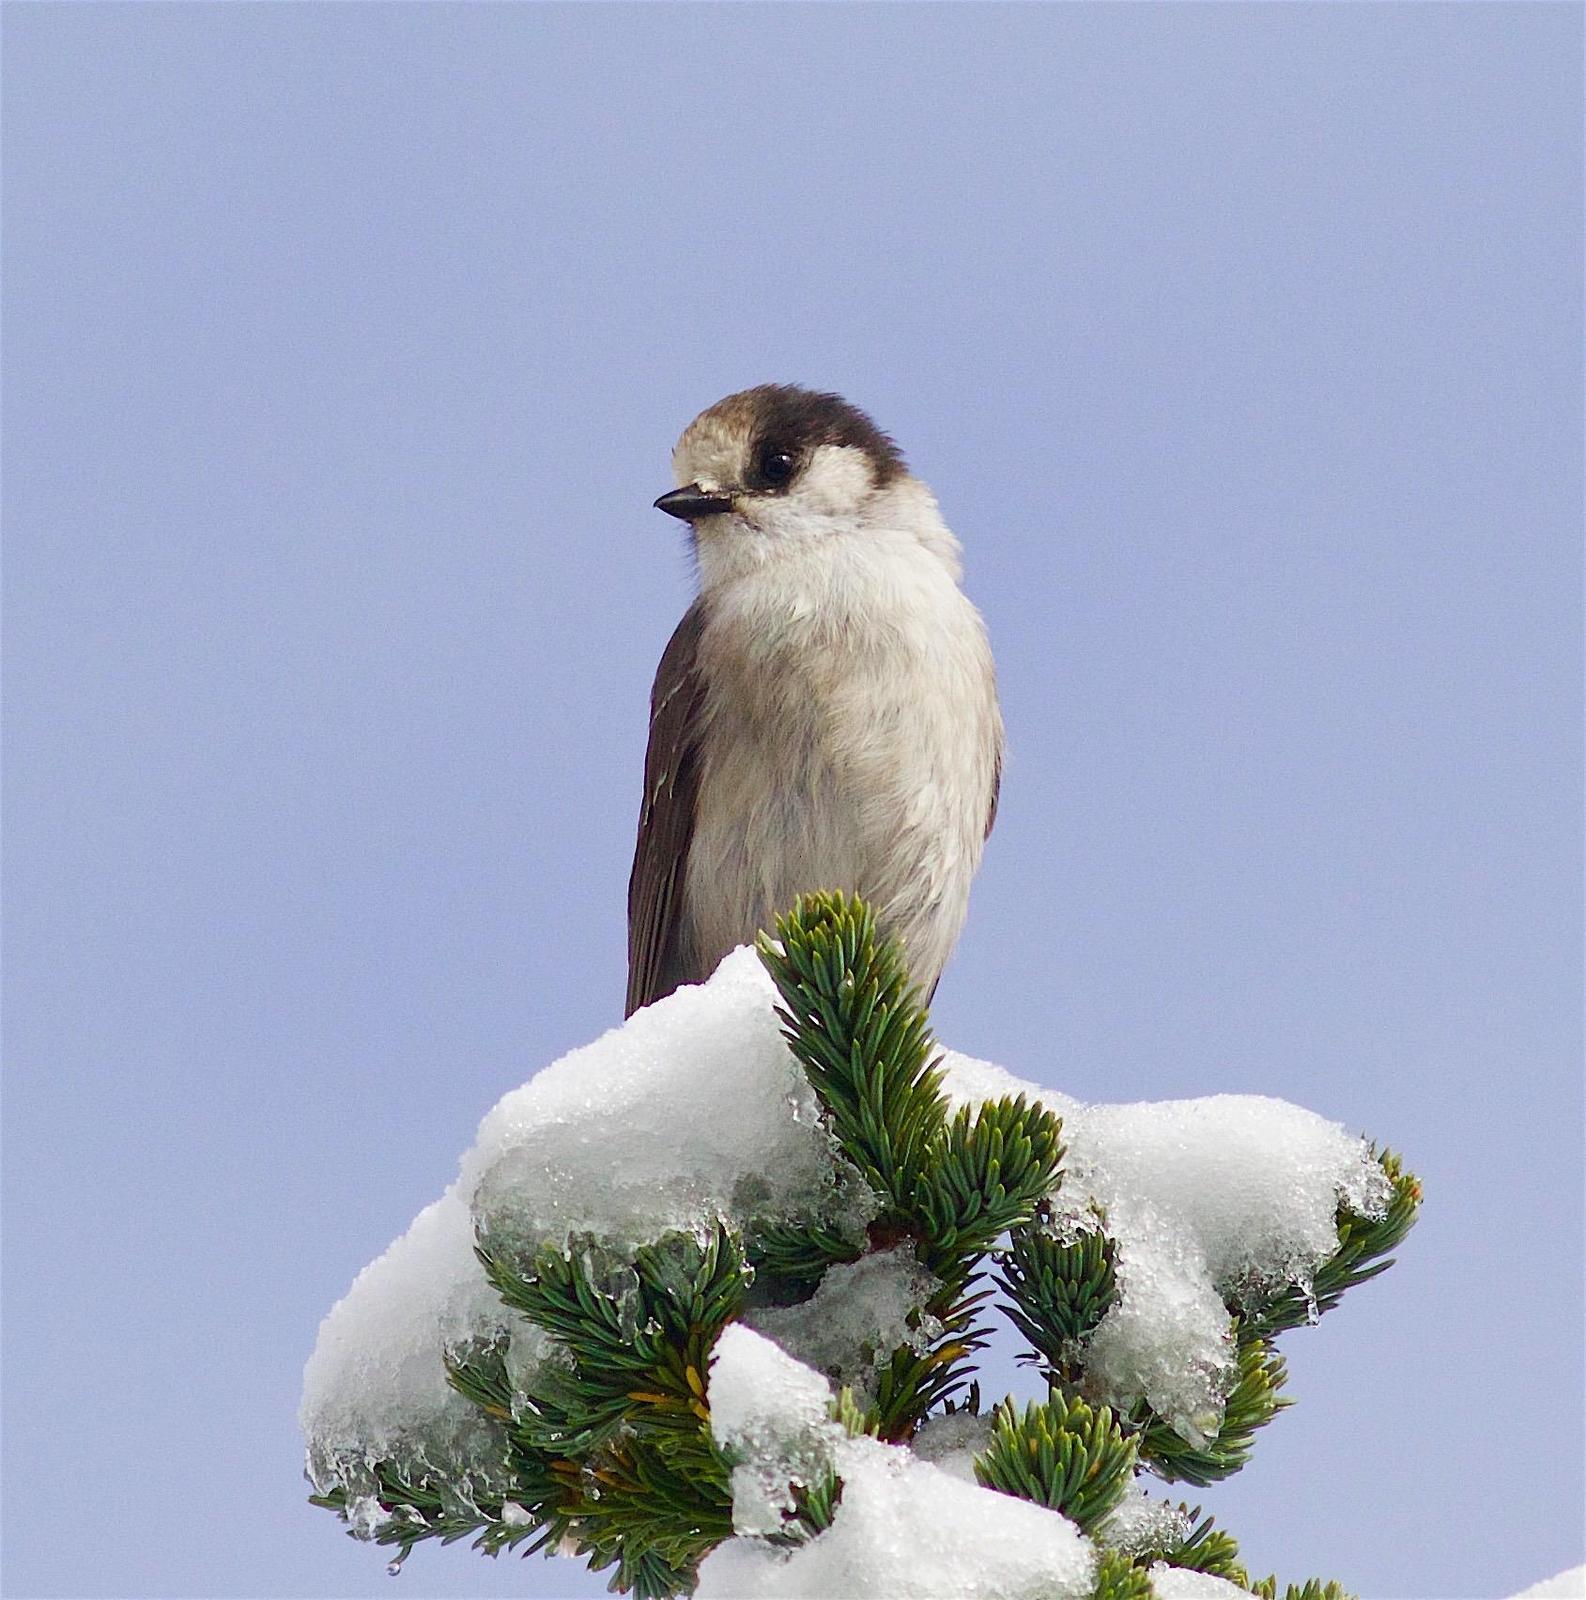 Gray Jay (Pacific) Photo by Kathryn Keith